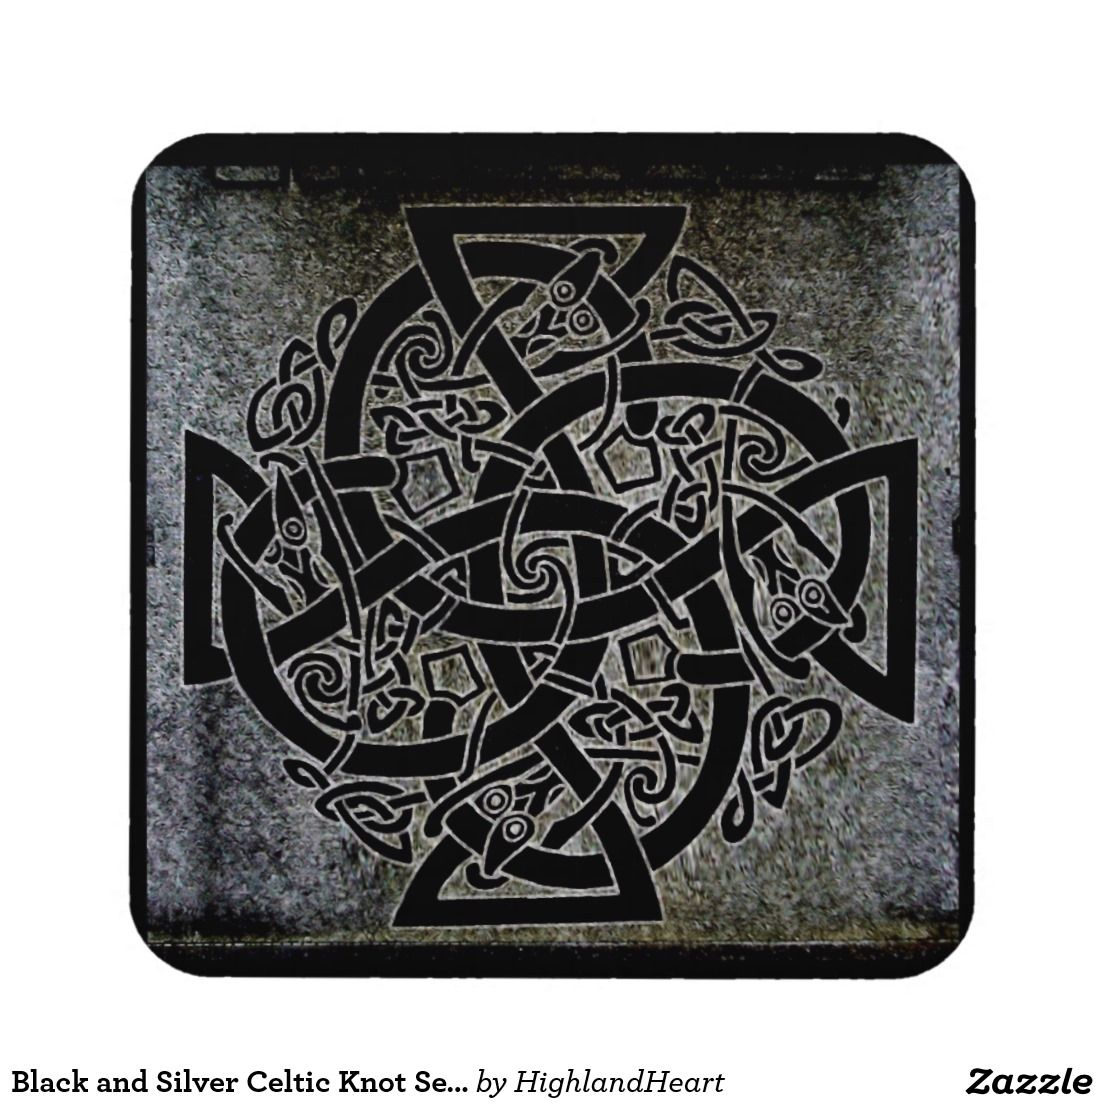 Black and Silver Celtic Knot Set of 6 Coasters